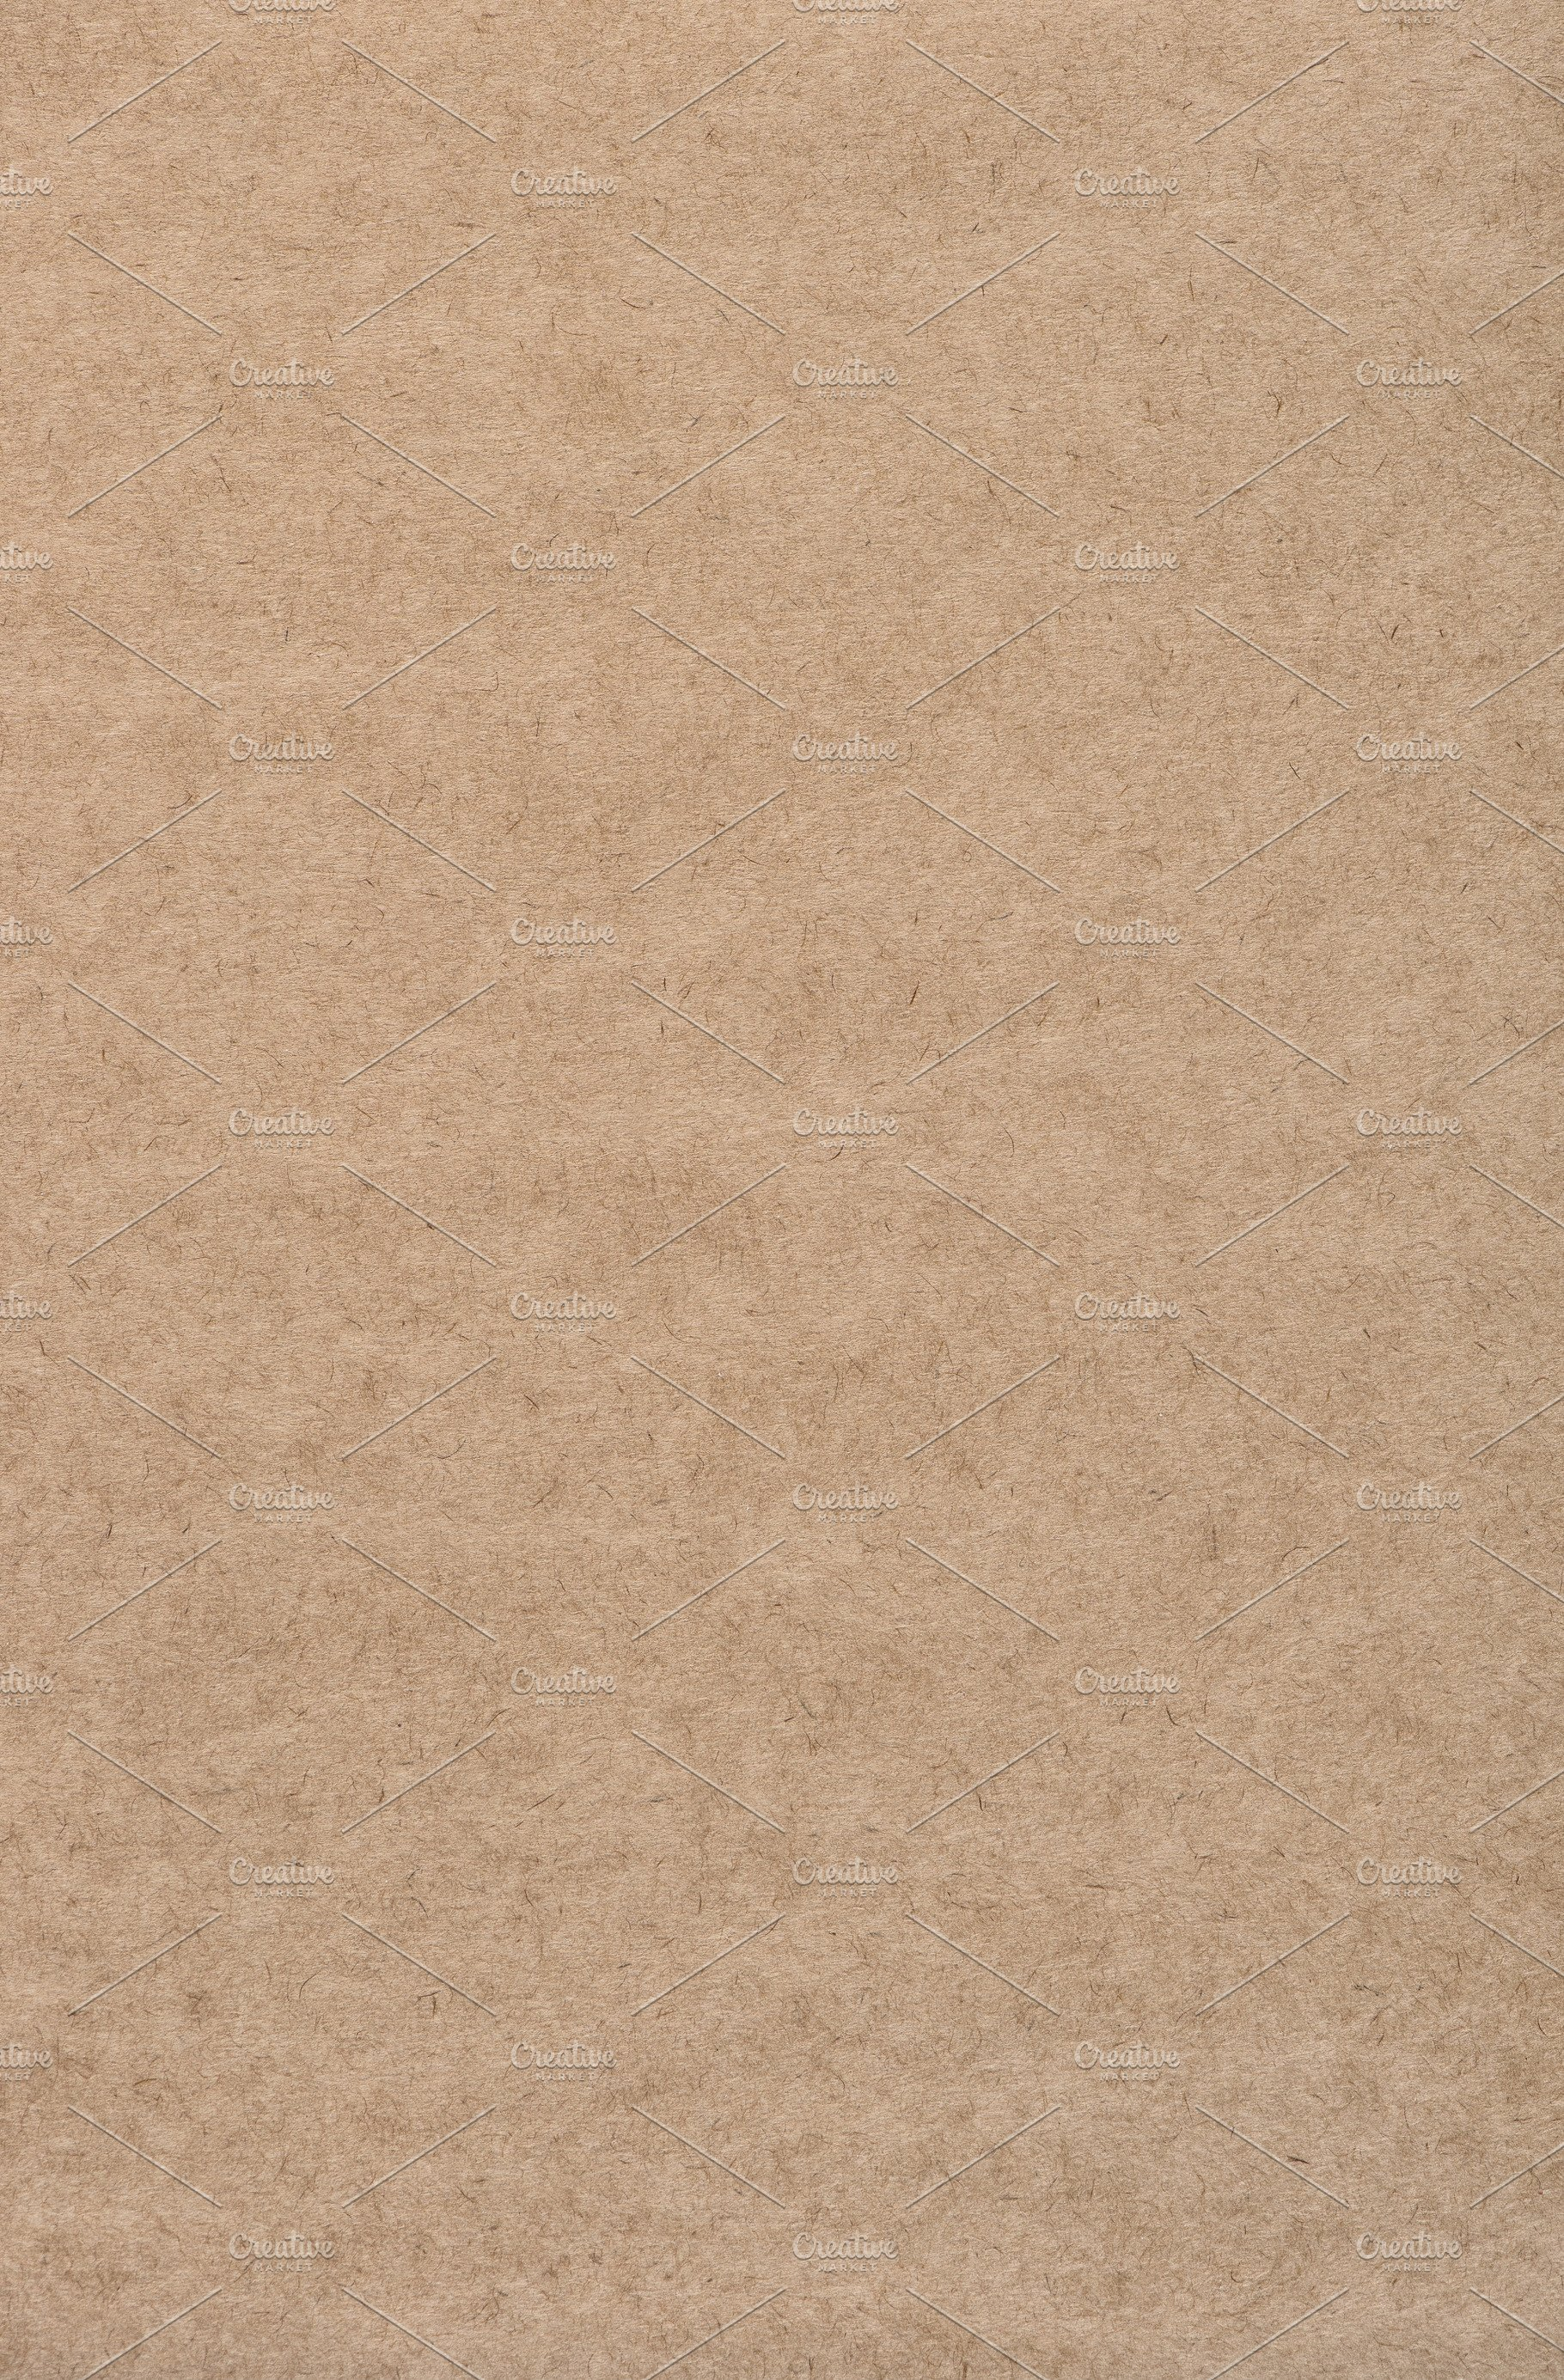 Recycled craft paper texture | High-Quality Abstract Stock Photos ~ Creative Market